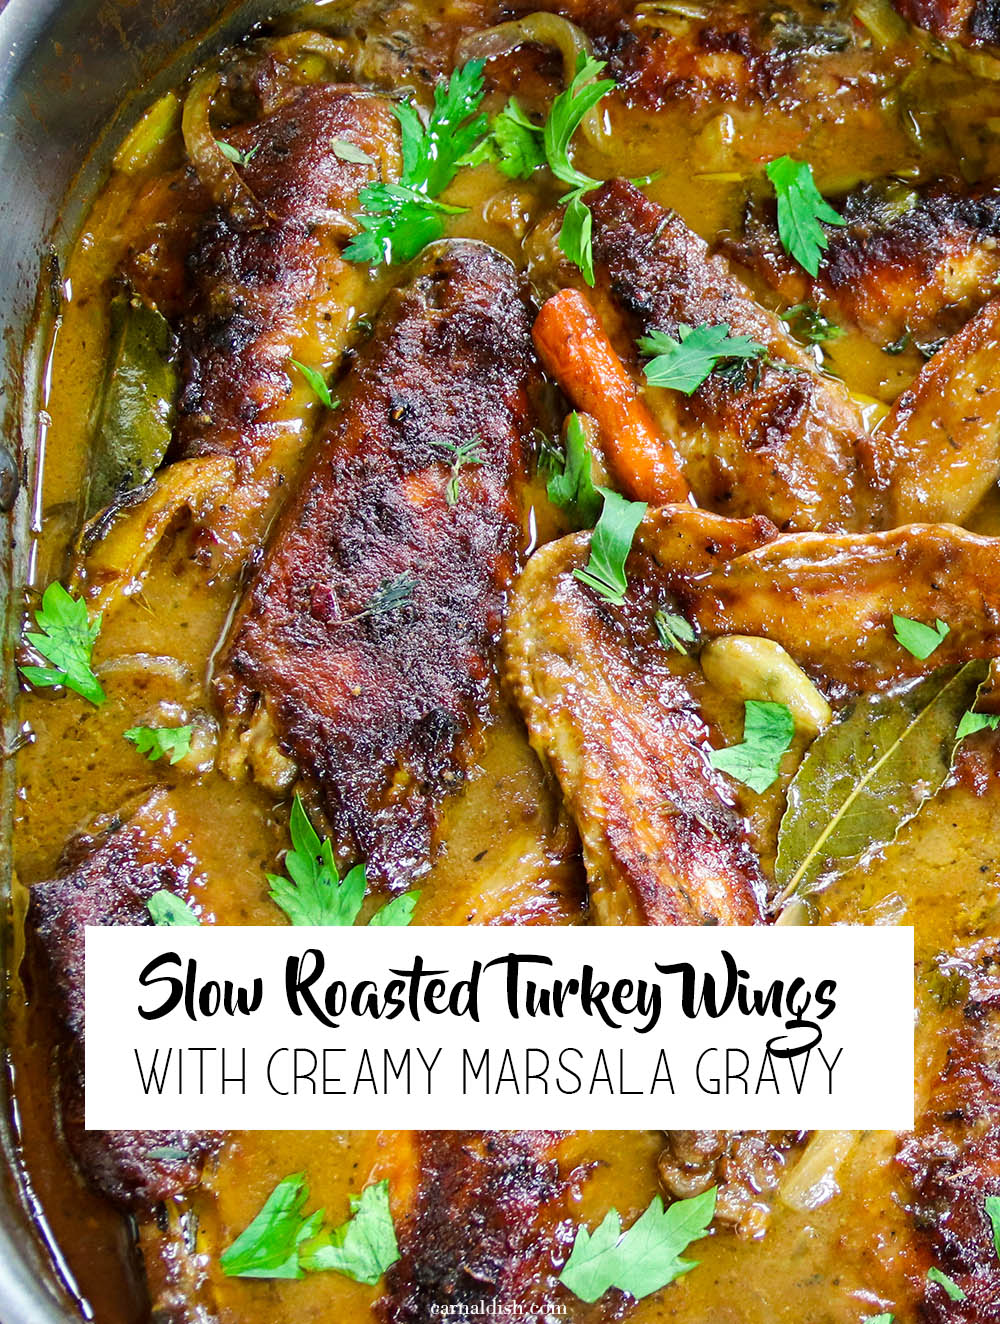 Slow roasted succulent fall off the bone turkey wings bathed in a creamy marsala gravy. Super hearty, easy, and tastes like grandma. So good | #smotheredturkeywings #turkeywings #roastedturkeywings #sundaydinner #turkey #christmasdinner #thanksgiving #carnaldish